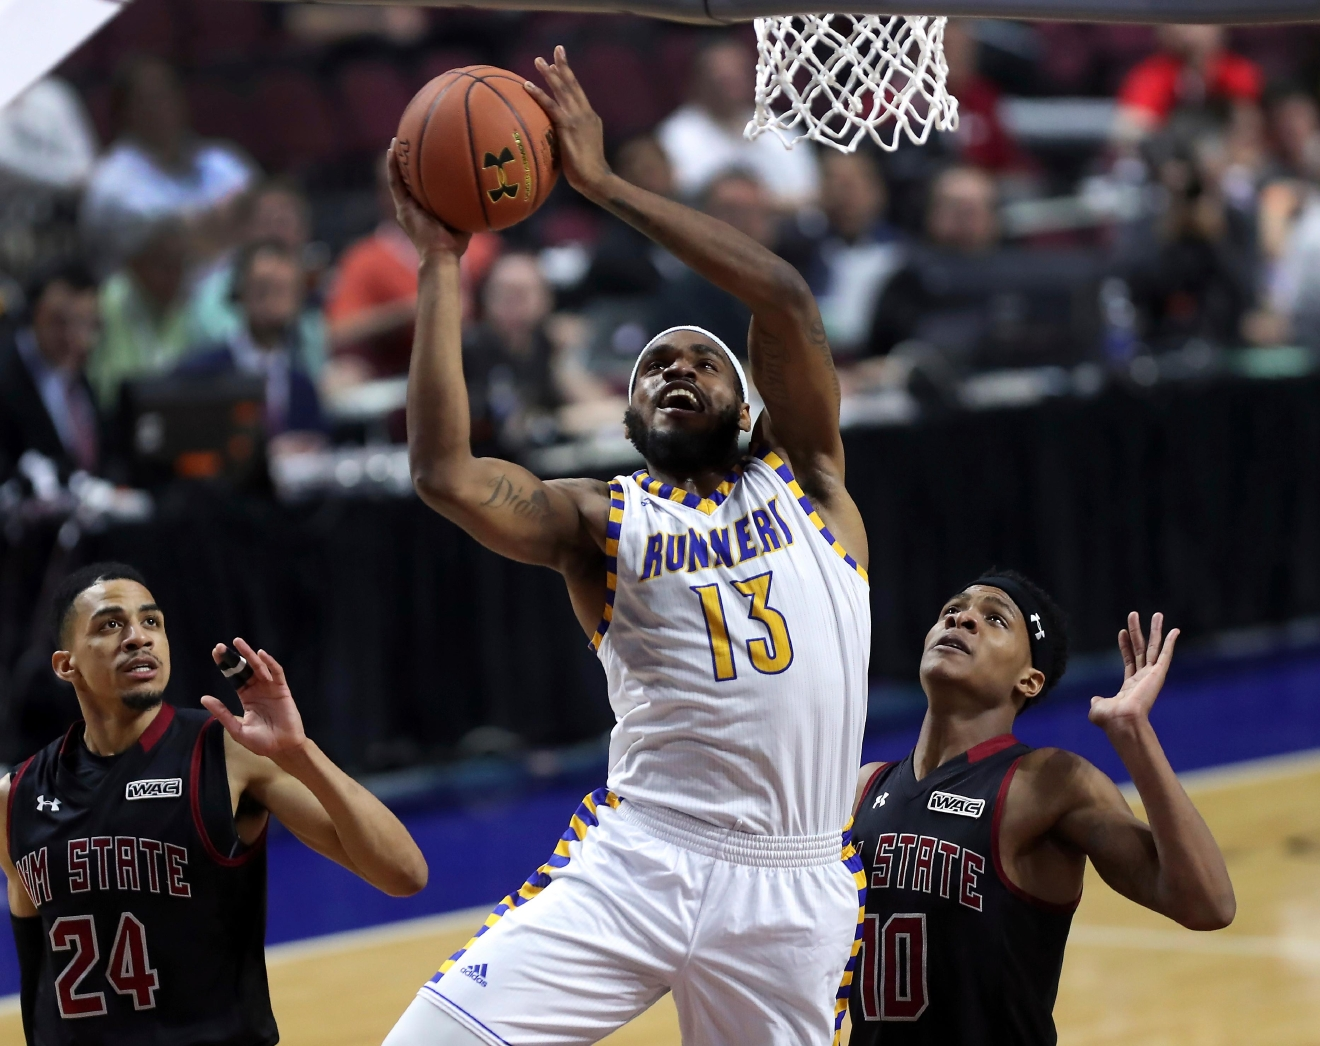 Cal State Bakersfield guard/forward Shon Briggs (13) sets up a shot between New Mexico State guard Matt Taylor (24) and forward Jemerrio Jones (10) during the first half of their NCAA college basketball game in the final of the Western Athletic Conference tournament on Saturday, March 11, 2017, in Las Vegas. (AP Photo/L.E. Baskow)